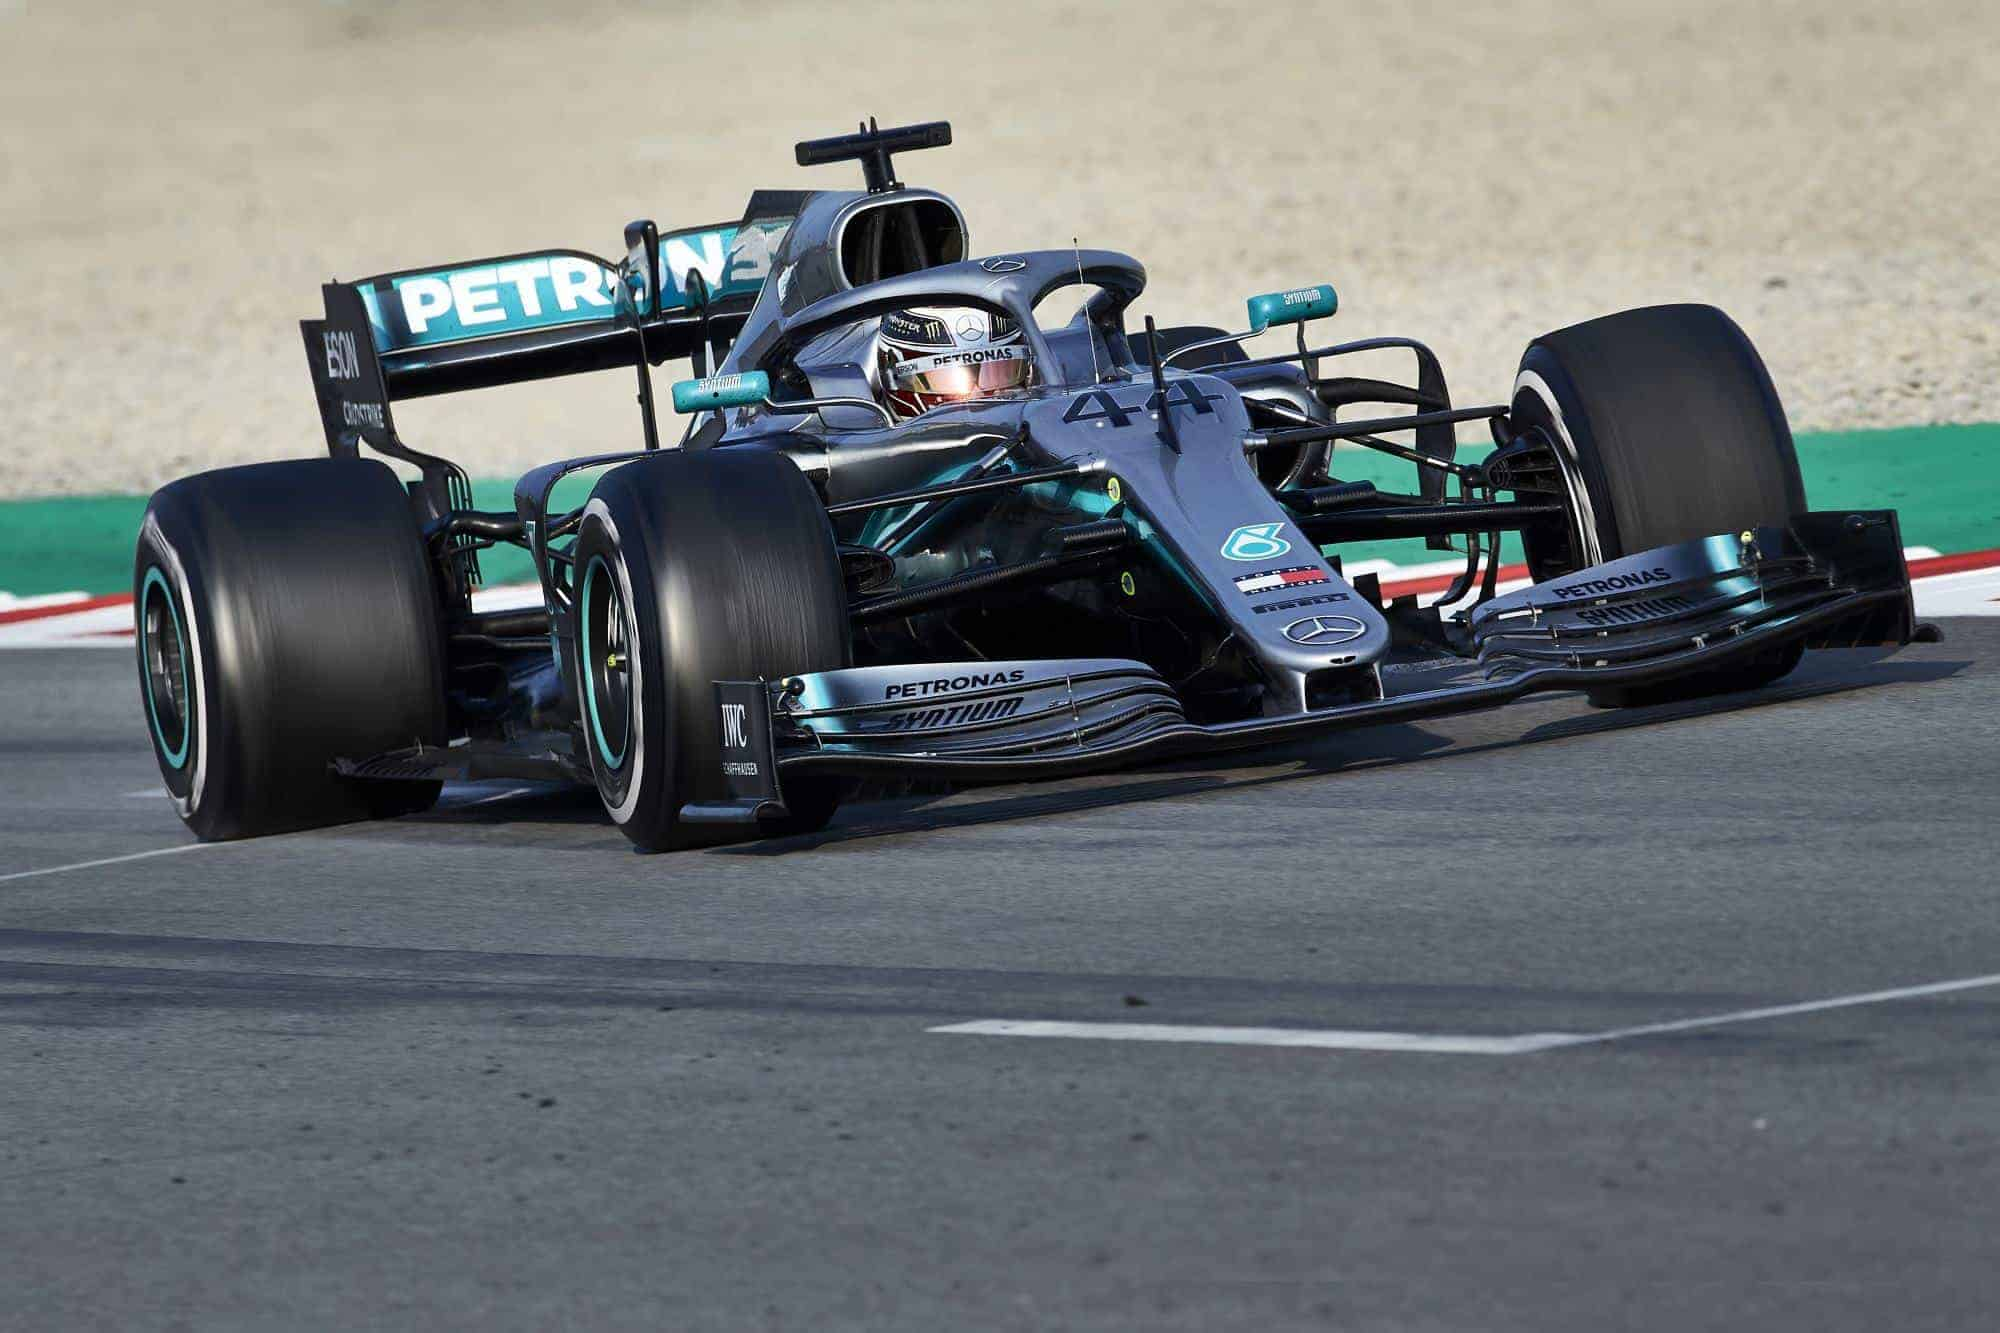 Lewis Hamilton Mercedes W10 Barcelona test 1 Day 3 Photo Daimler